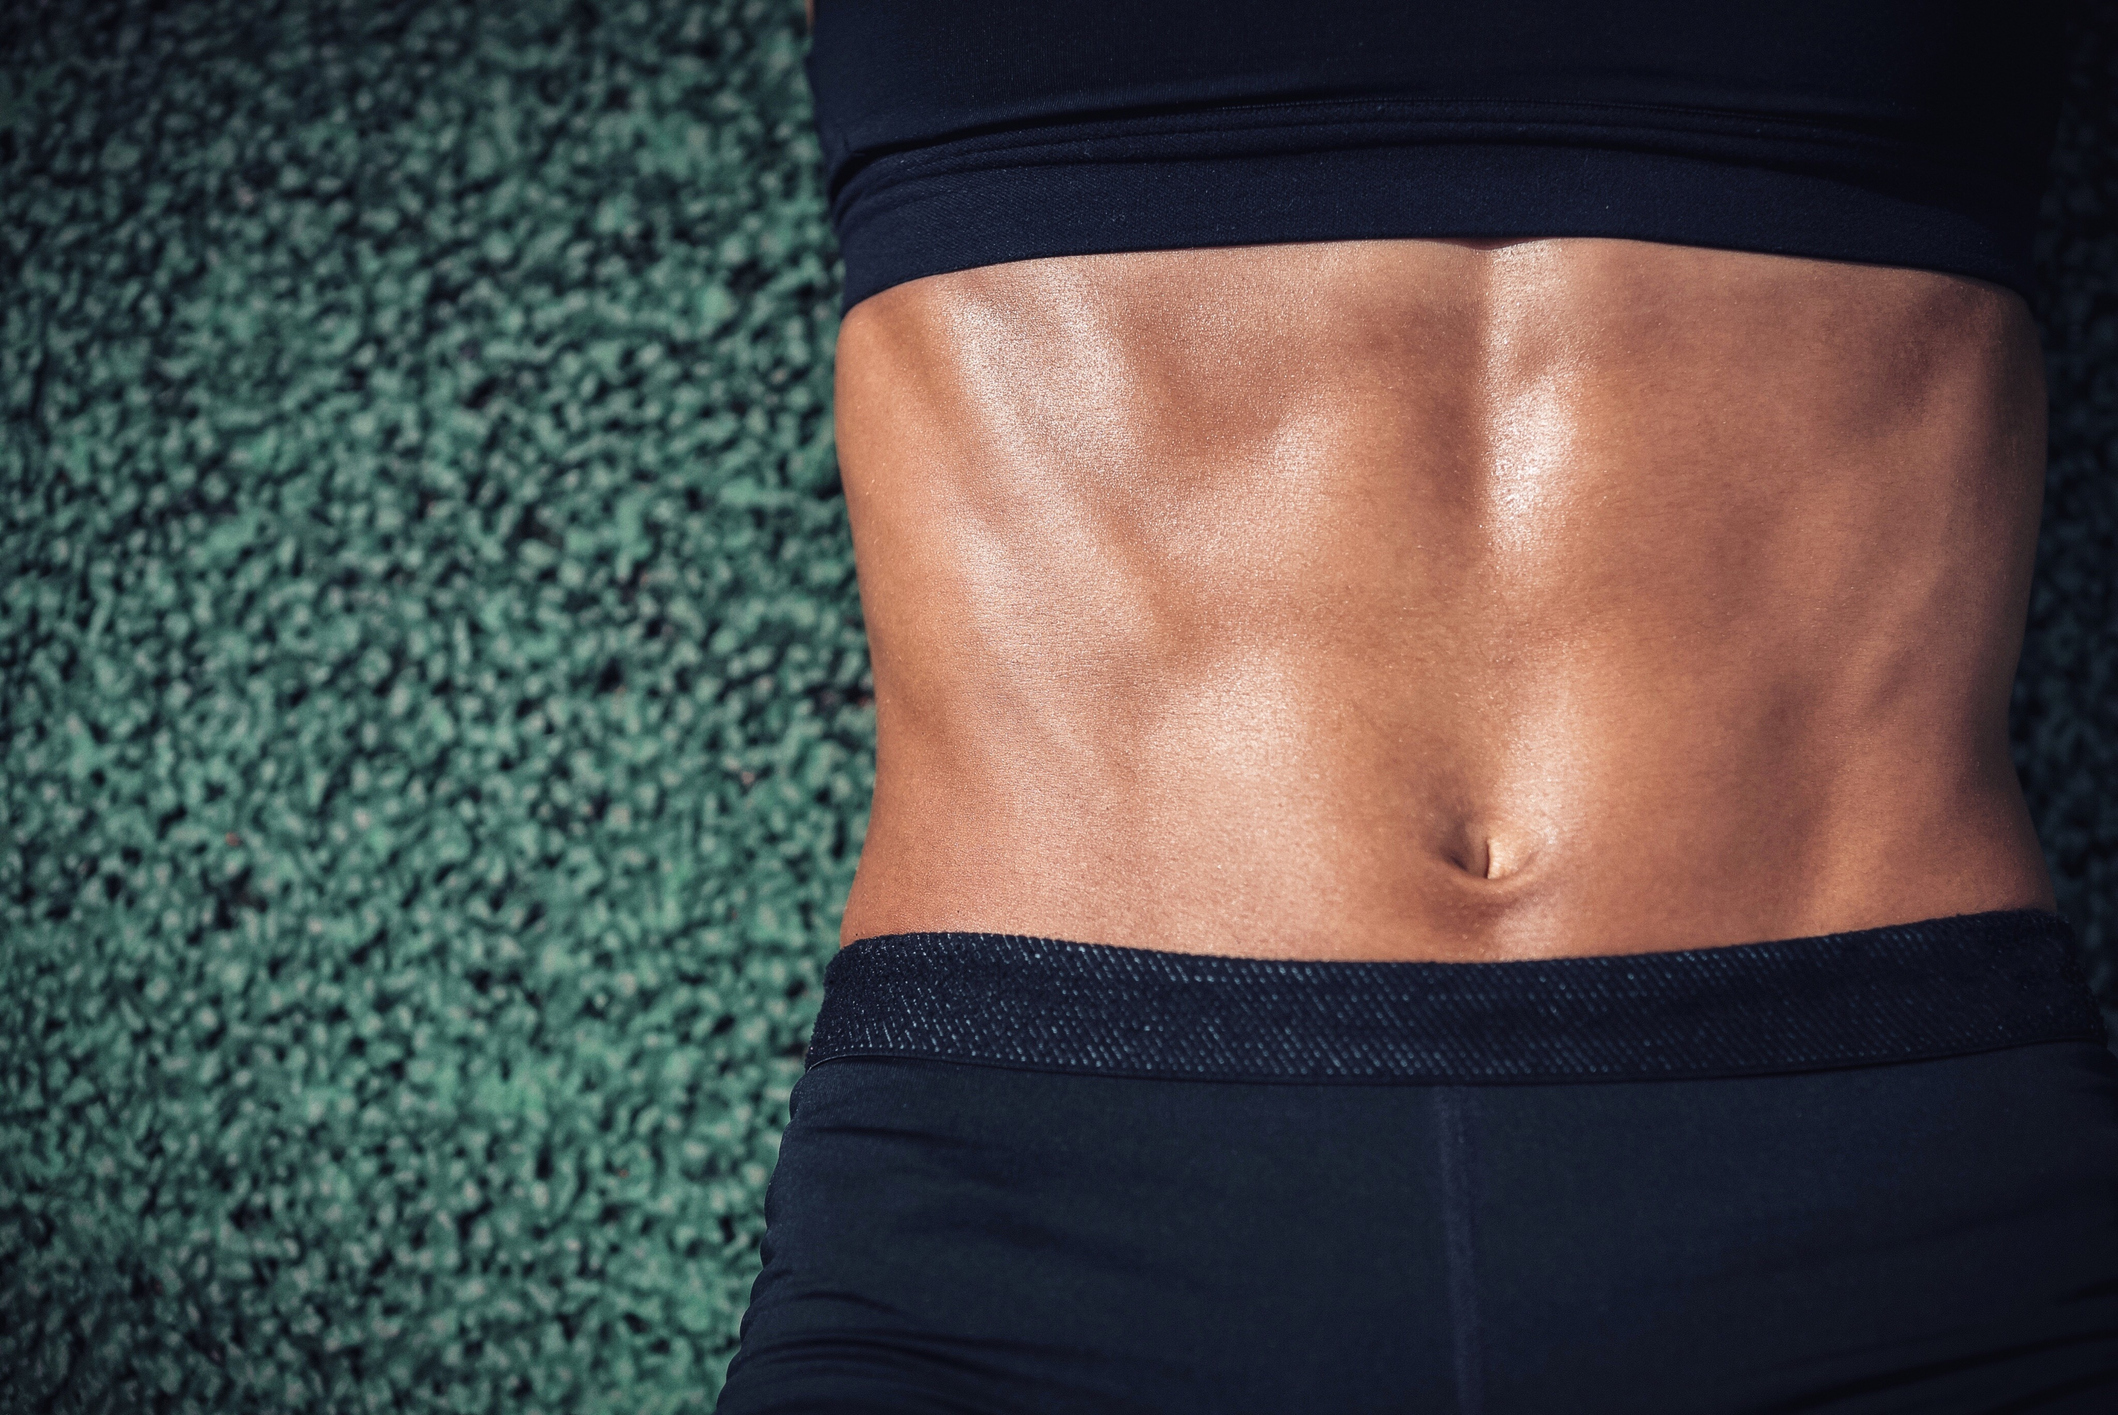 midsection-abs.jpg